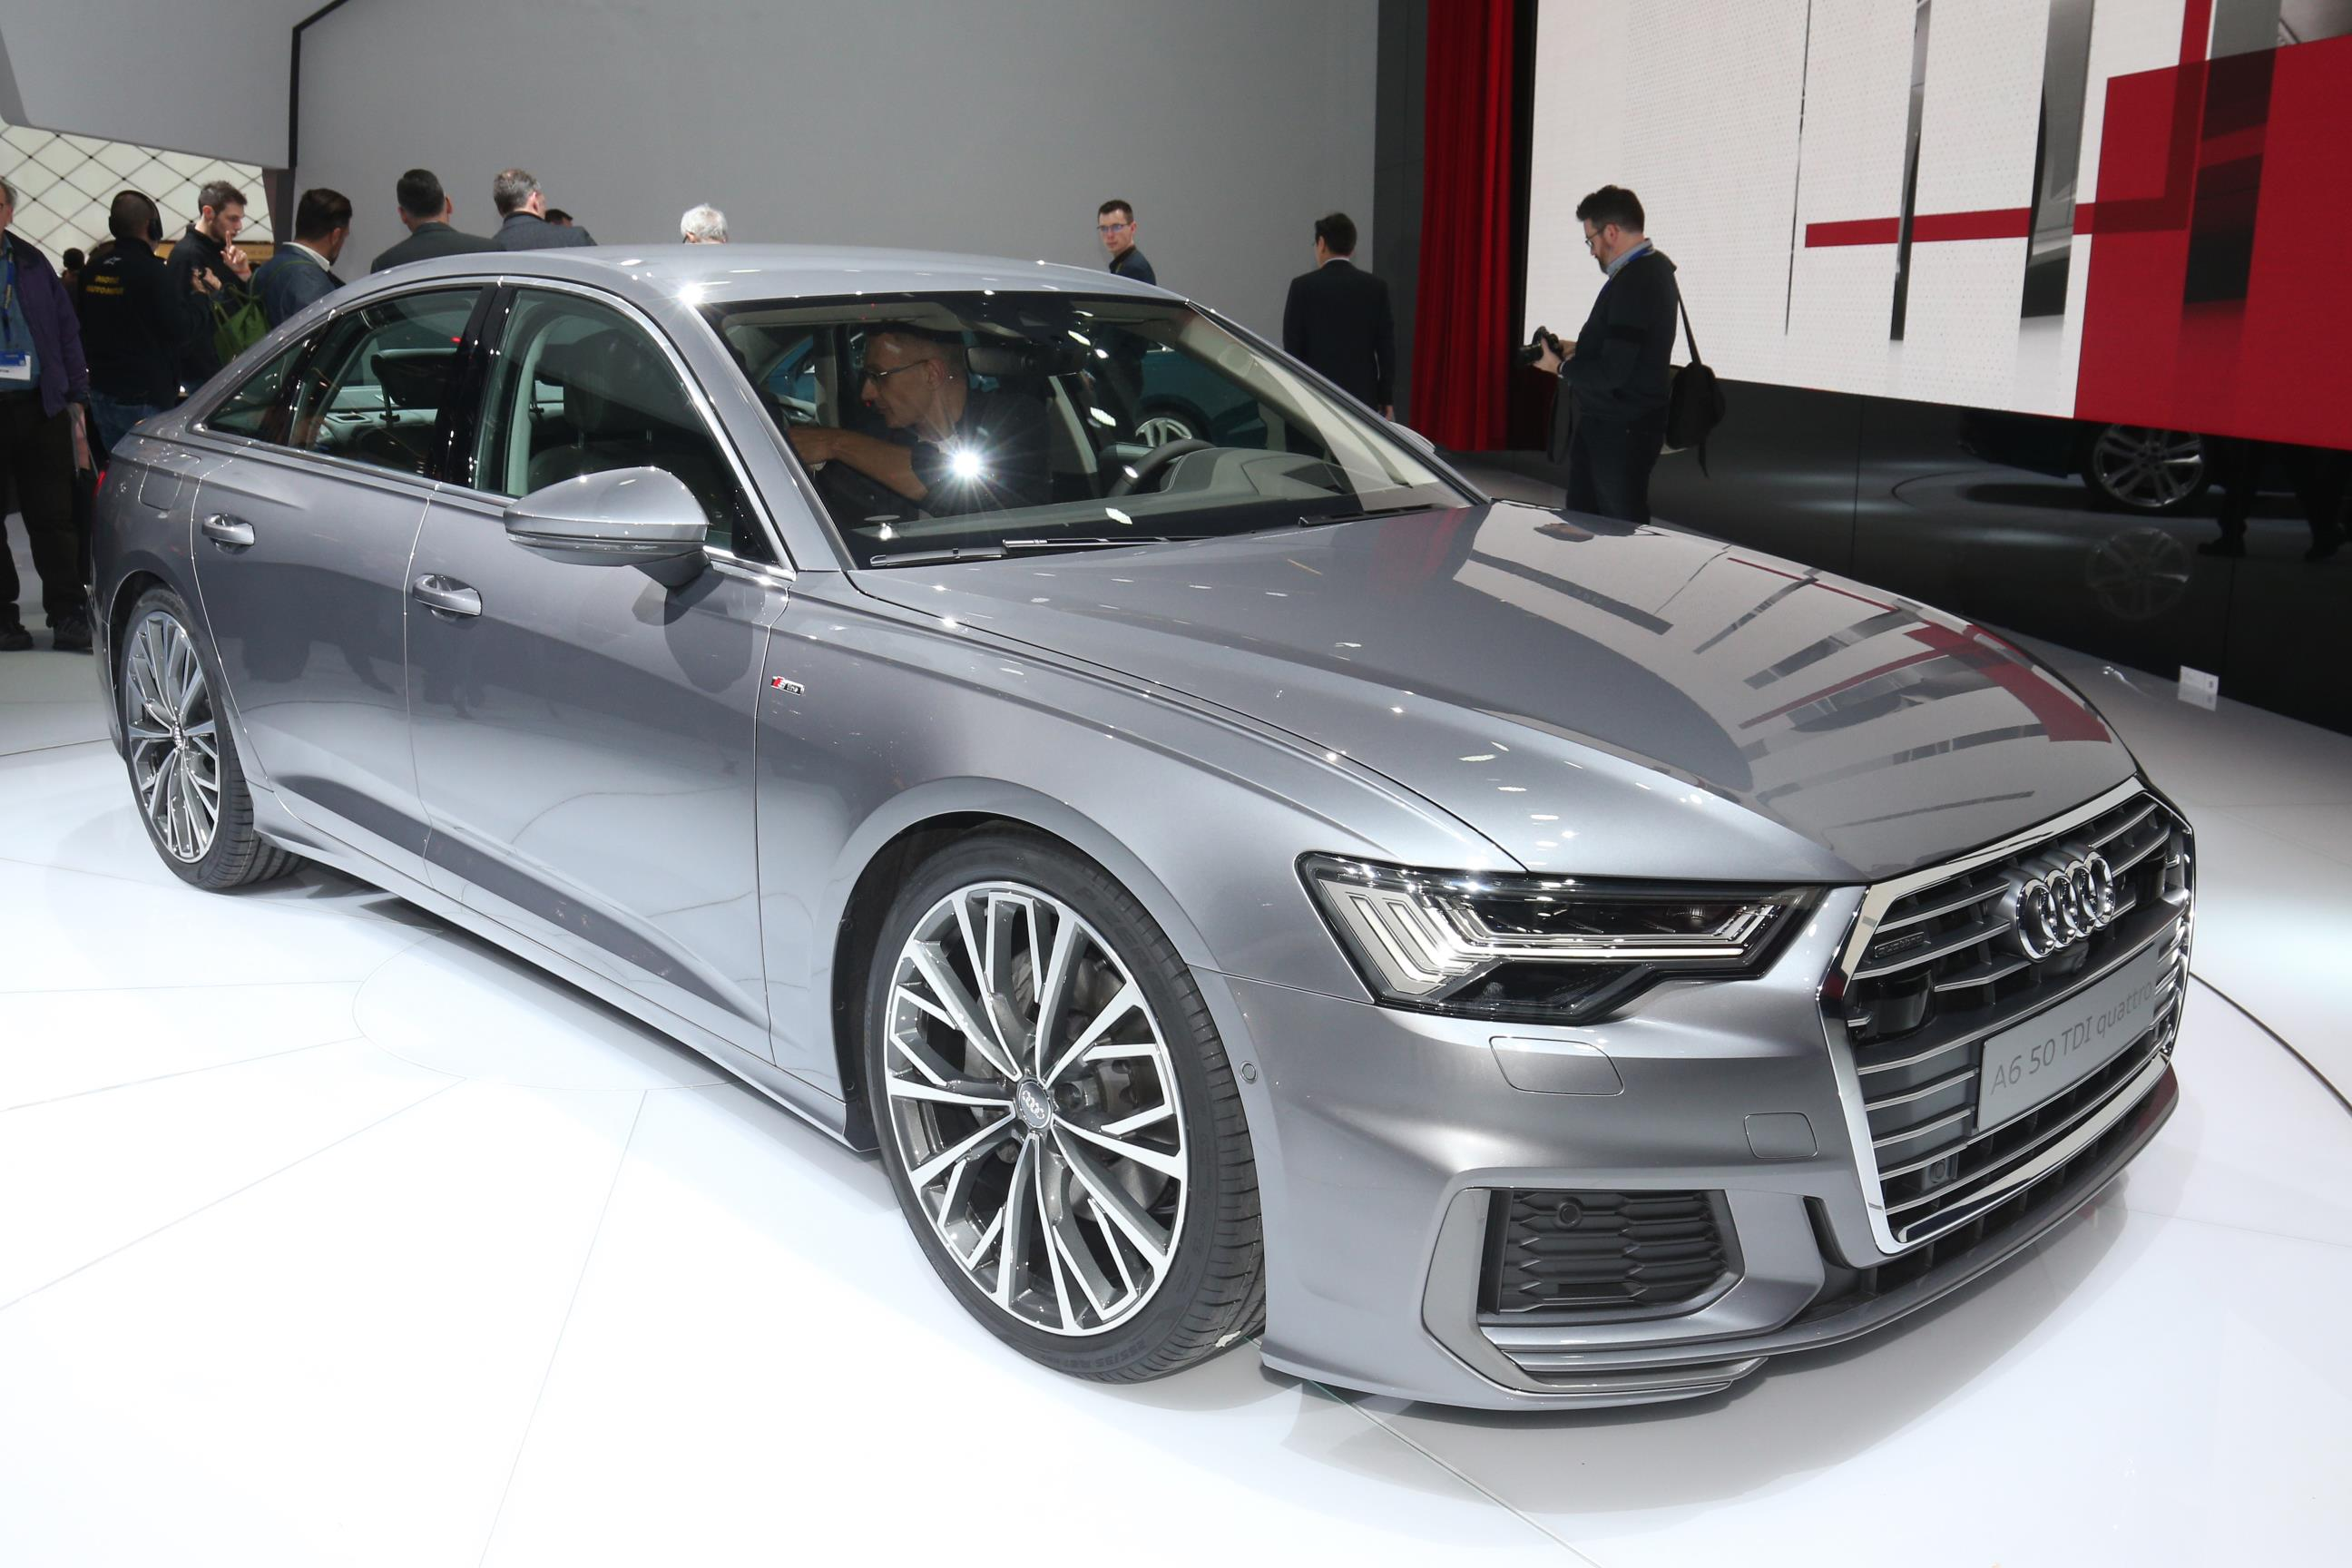 New Audi A6 making its appearance at the Geneva Motor Show